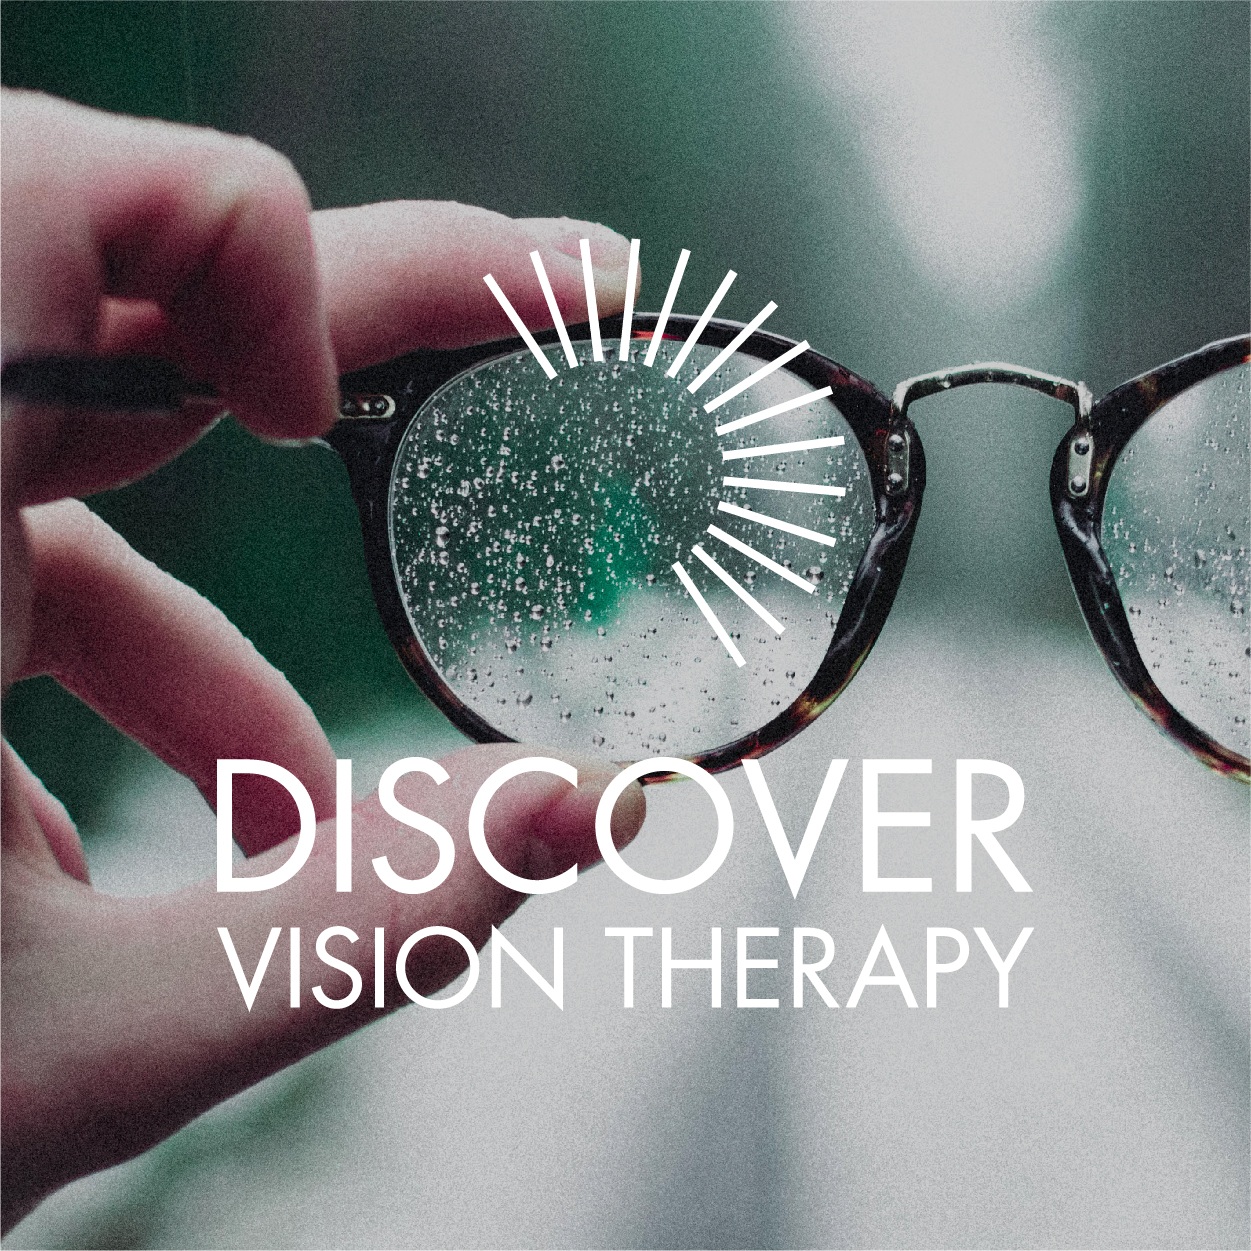 <p><strong>Discover Vision Therapy</strong></p>